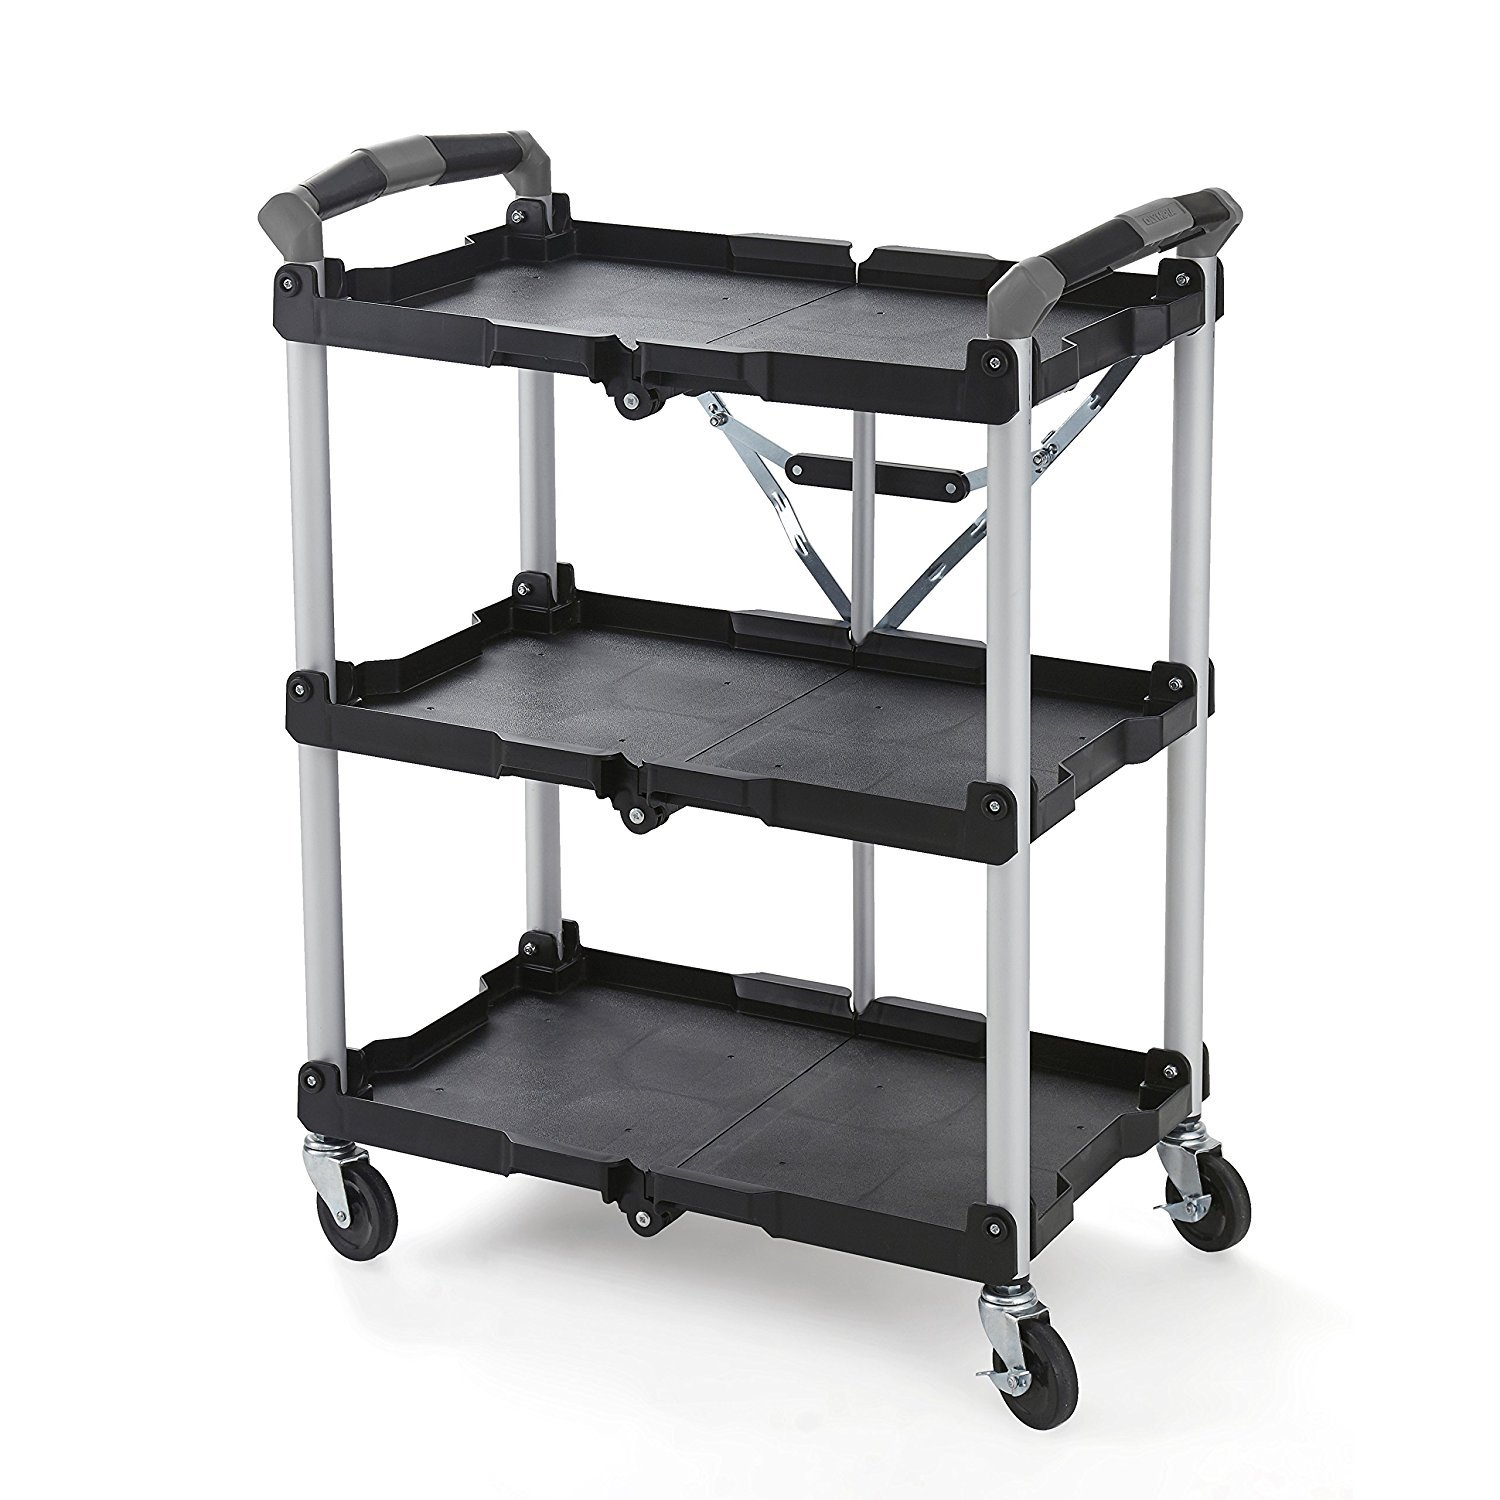 Olympia Tools 85-188 Collapsible Service Cart (1 CART)